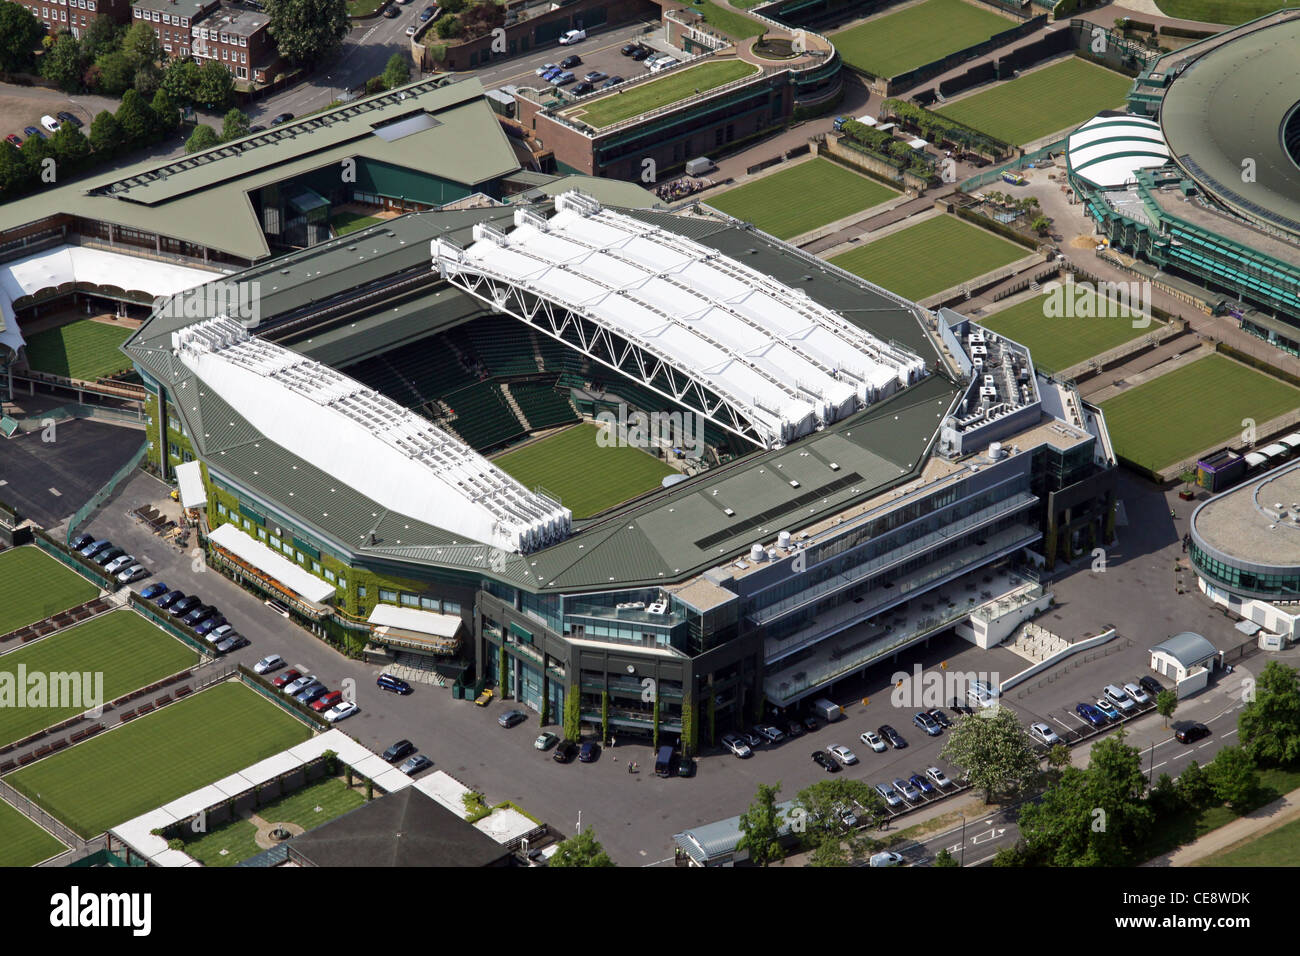 Aerial image, All England Tennis Club Centre Court, Wimbledon, London SW19 - Stock Image